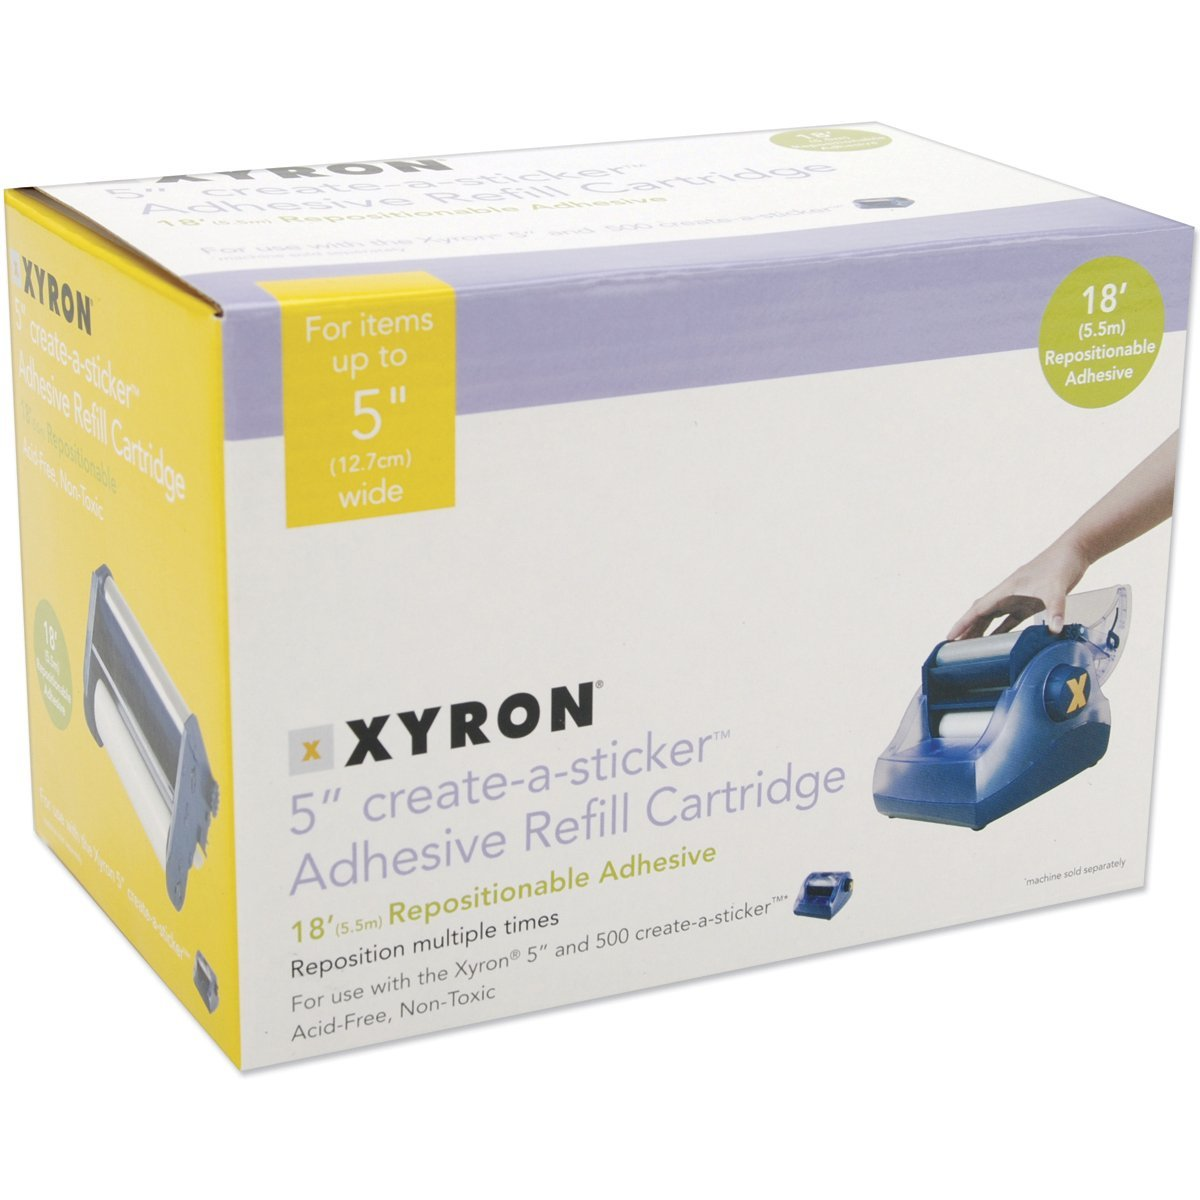 Xyron AT1506-18 Acid-Free Repositionable Adhesive Refill Cartridge for The XRN500 5-inch Create-a-Sticker, 18-feet